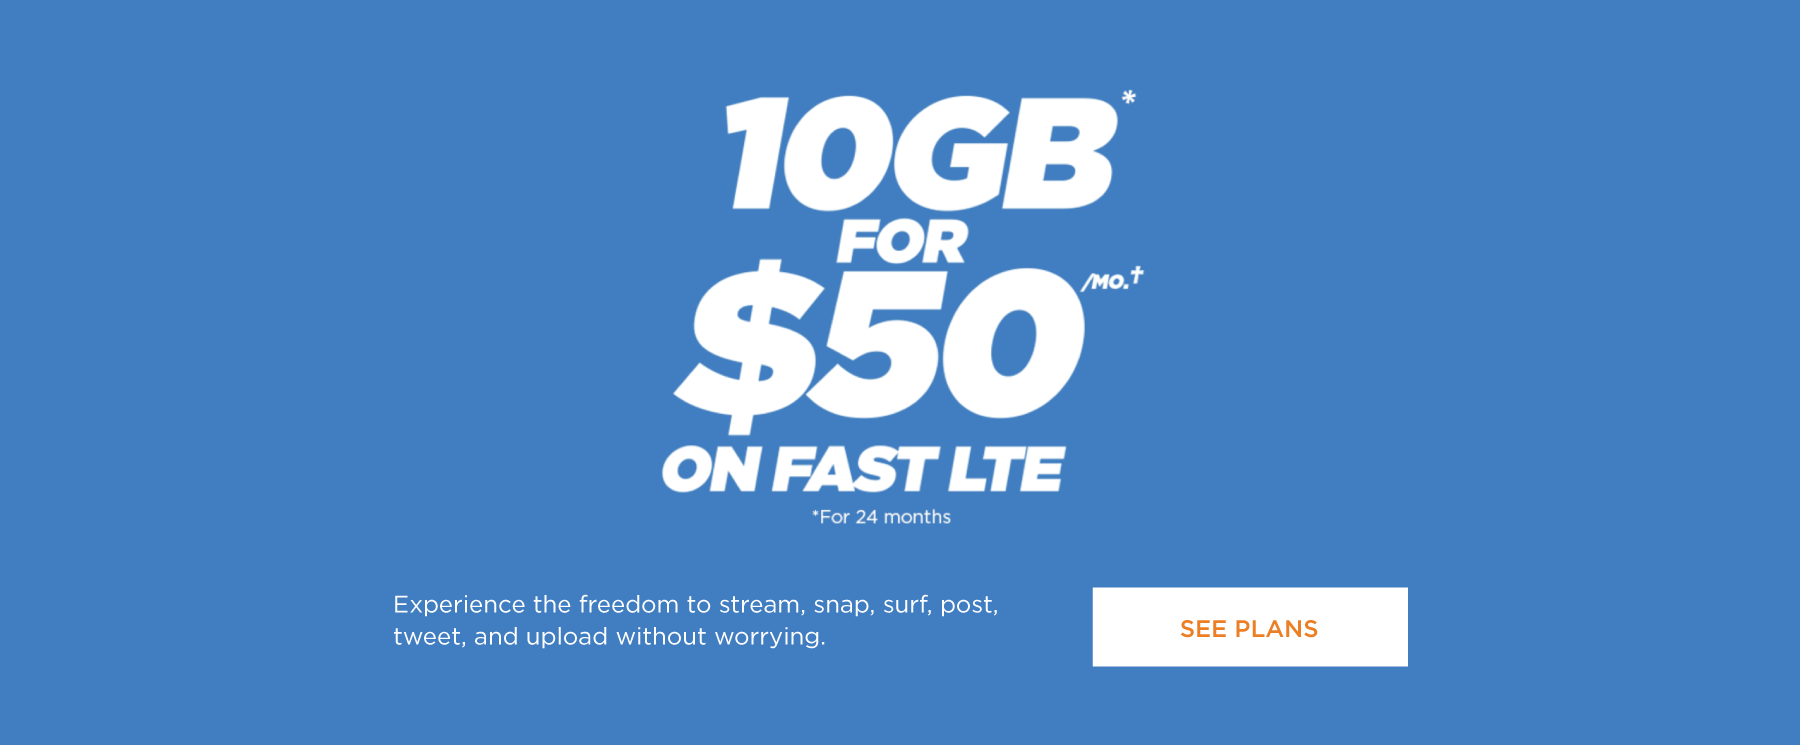 10GB for $50 on fast LTE